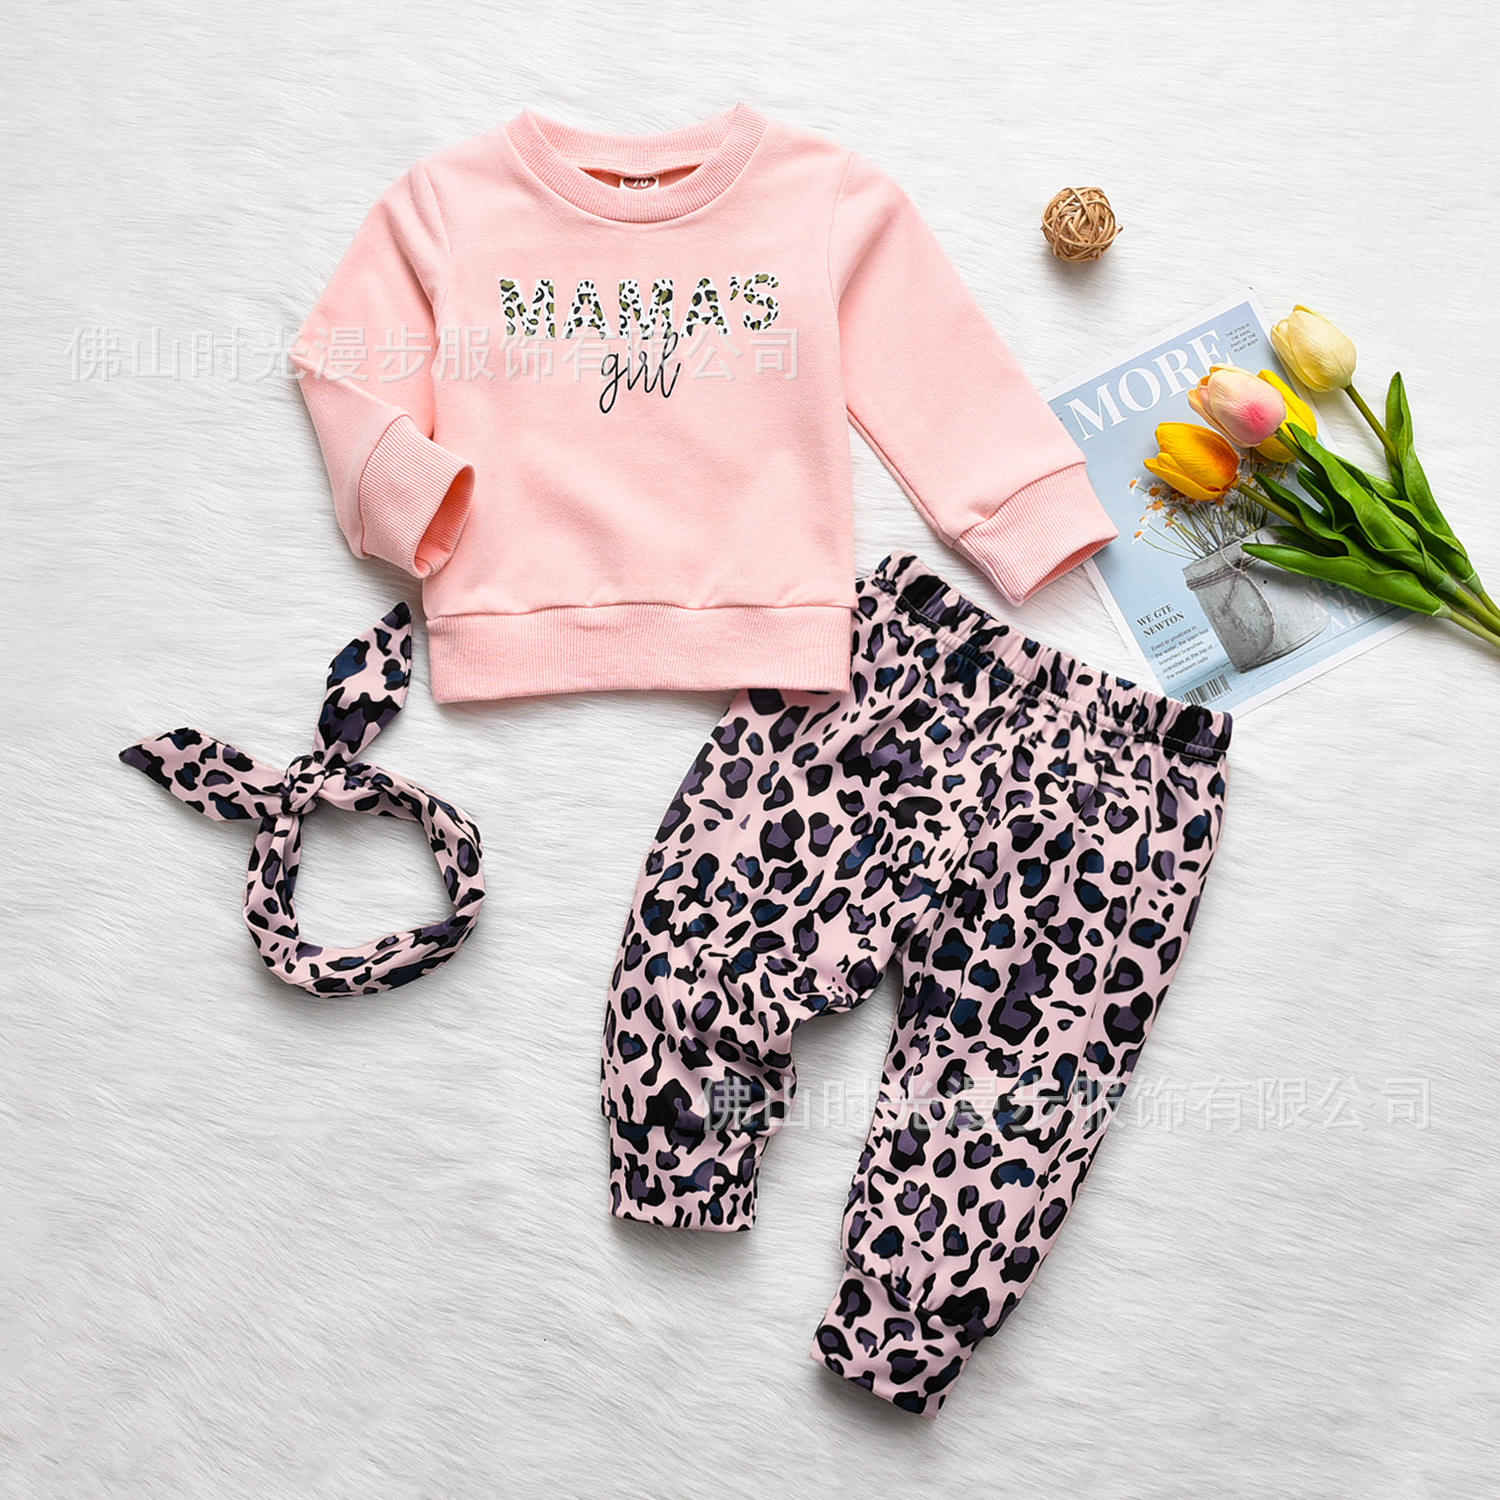 Infant clothing 2017 Autumn Winter Baby Girls Clothes T-shirt+leopard printPants 2pcs Outfit Suit Baby Girls Clothing Set